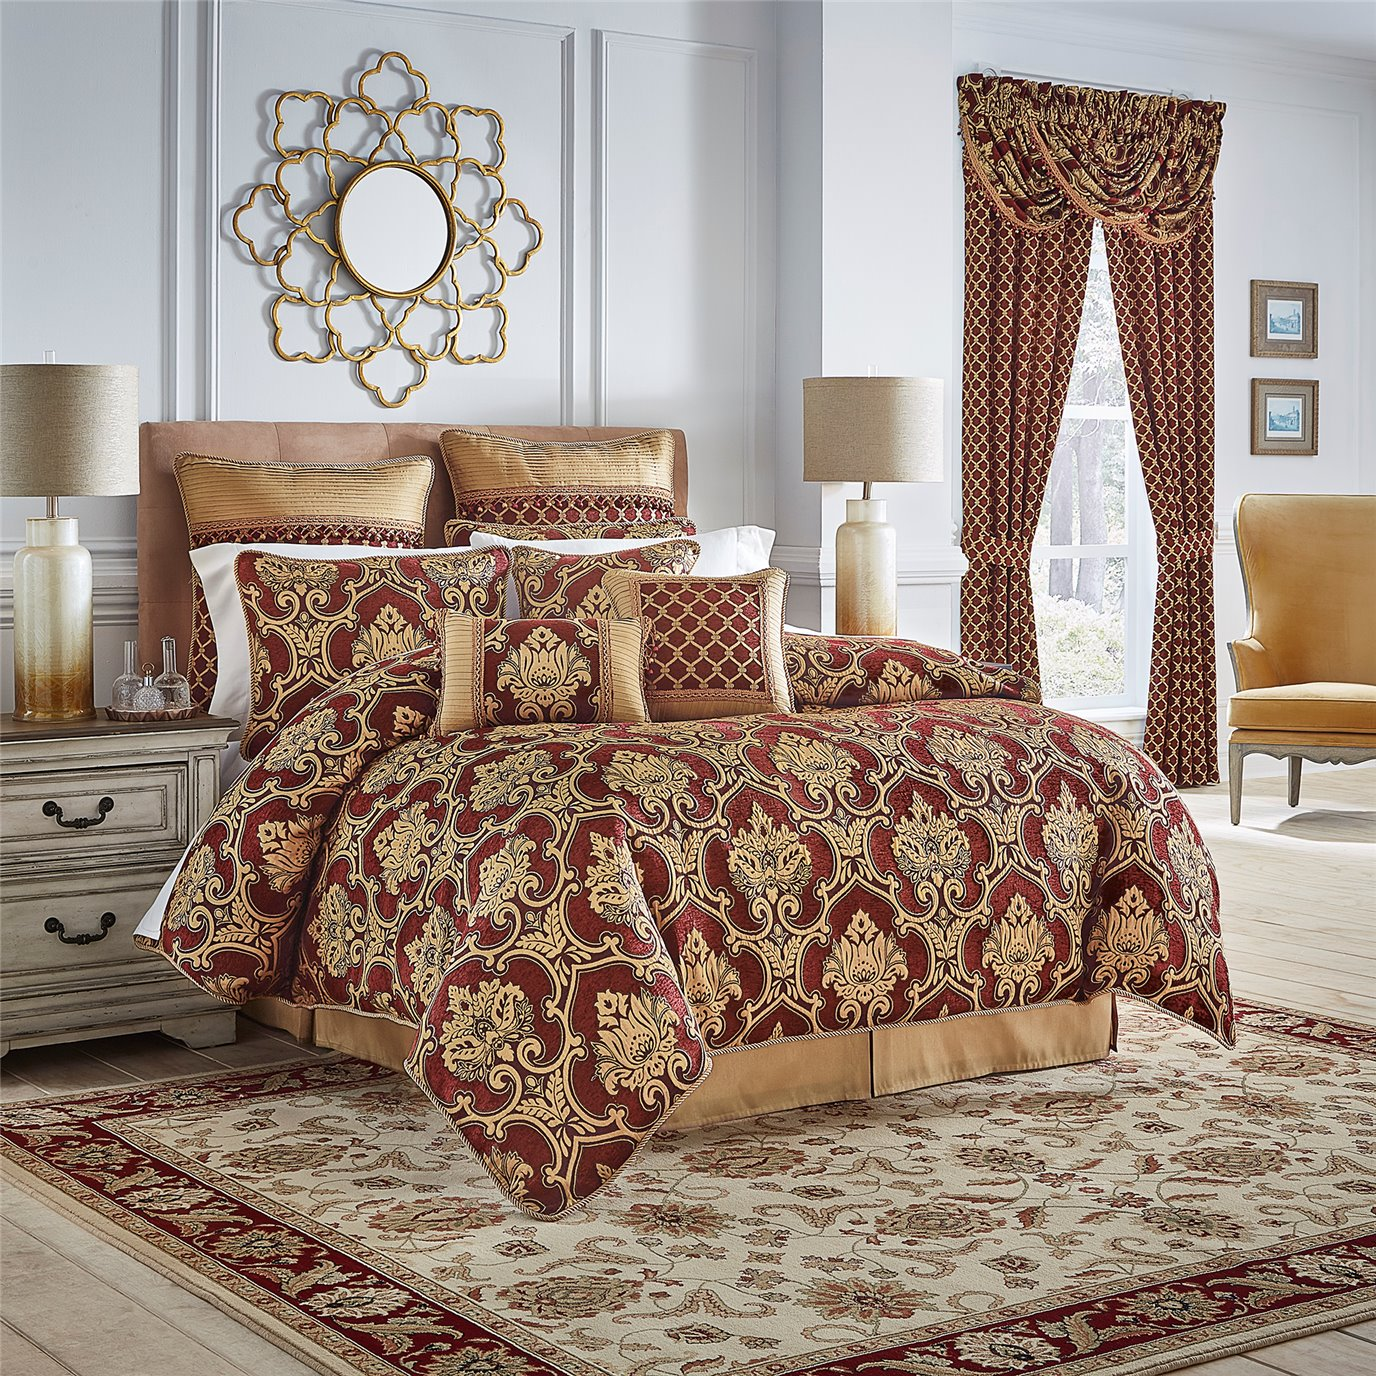 Gianna Queen 4 Piece Comforter Set By Croscill